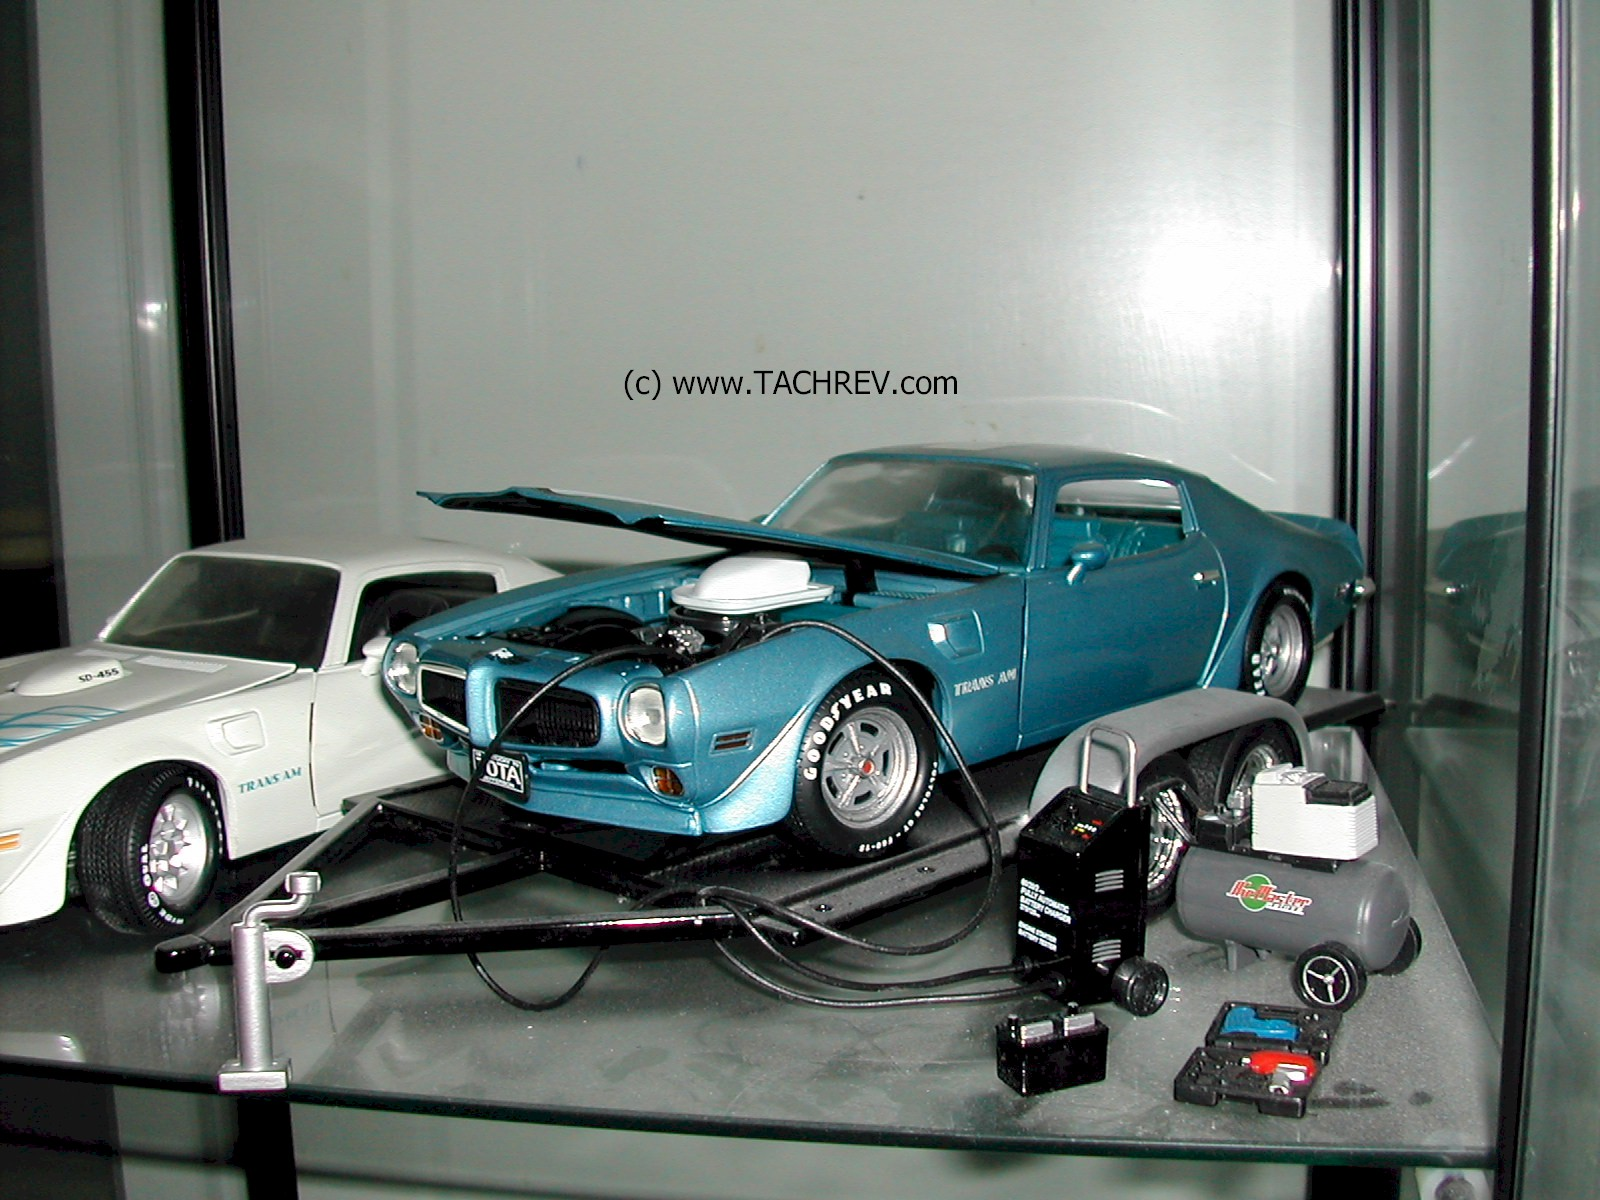 Getting the old T/A ready for the show in small scale.  The usual dead battery syndrome of the collector car in storage.